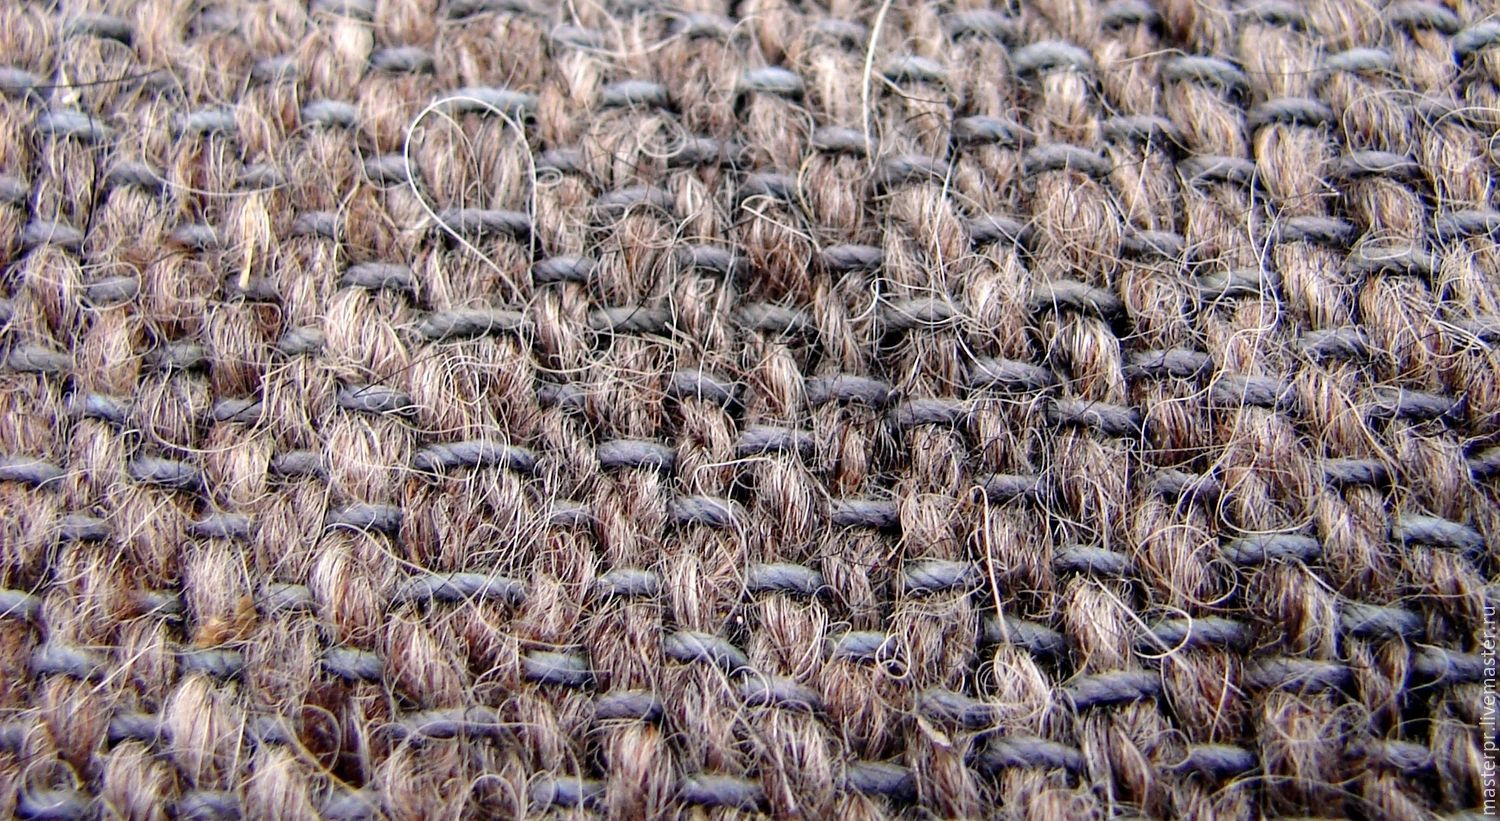 The grey fabric from dog hair